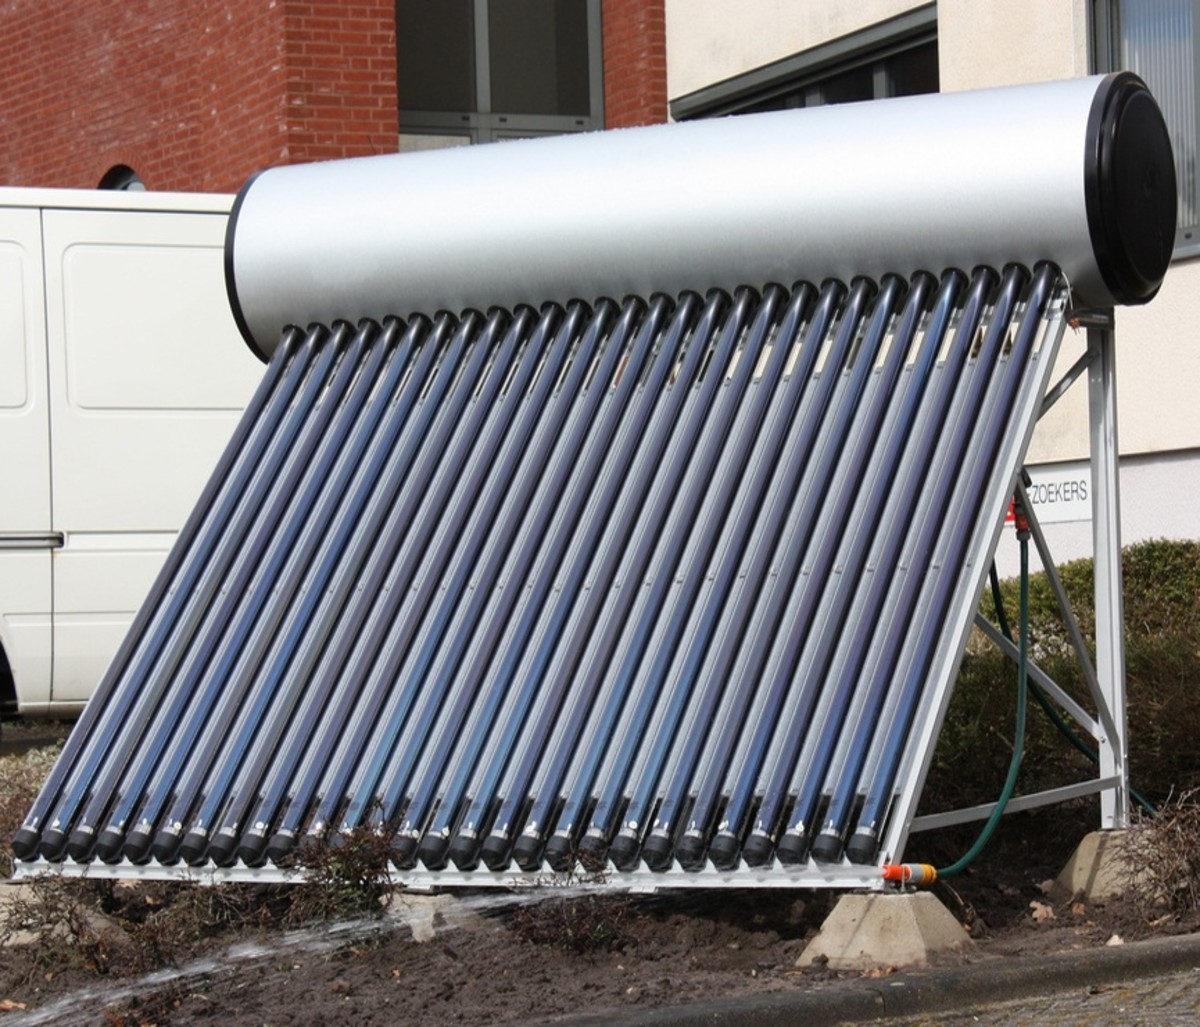 5 Benefits of Using a Solar Water Heater